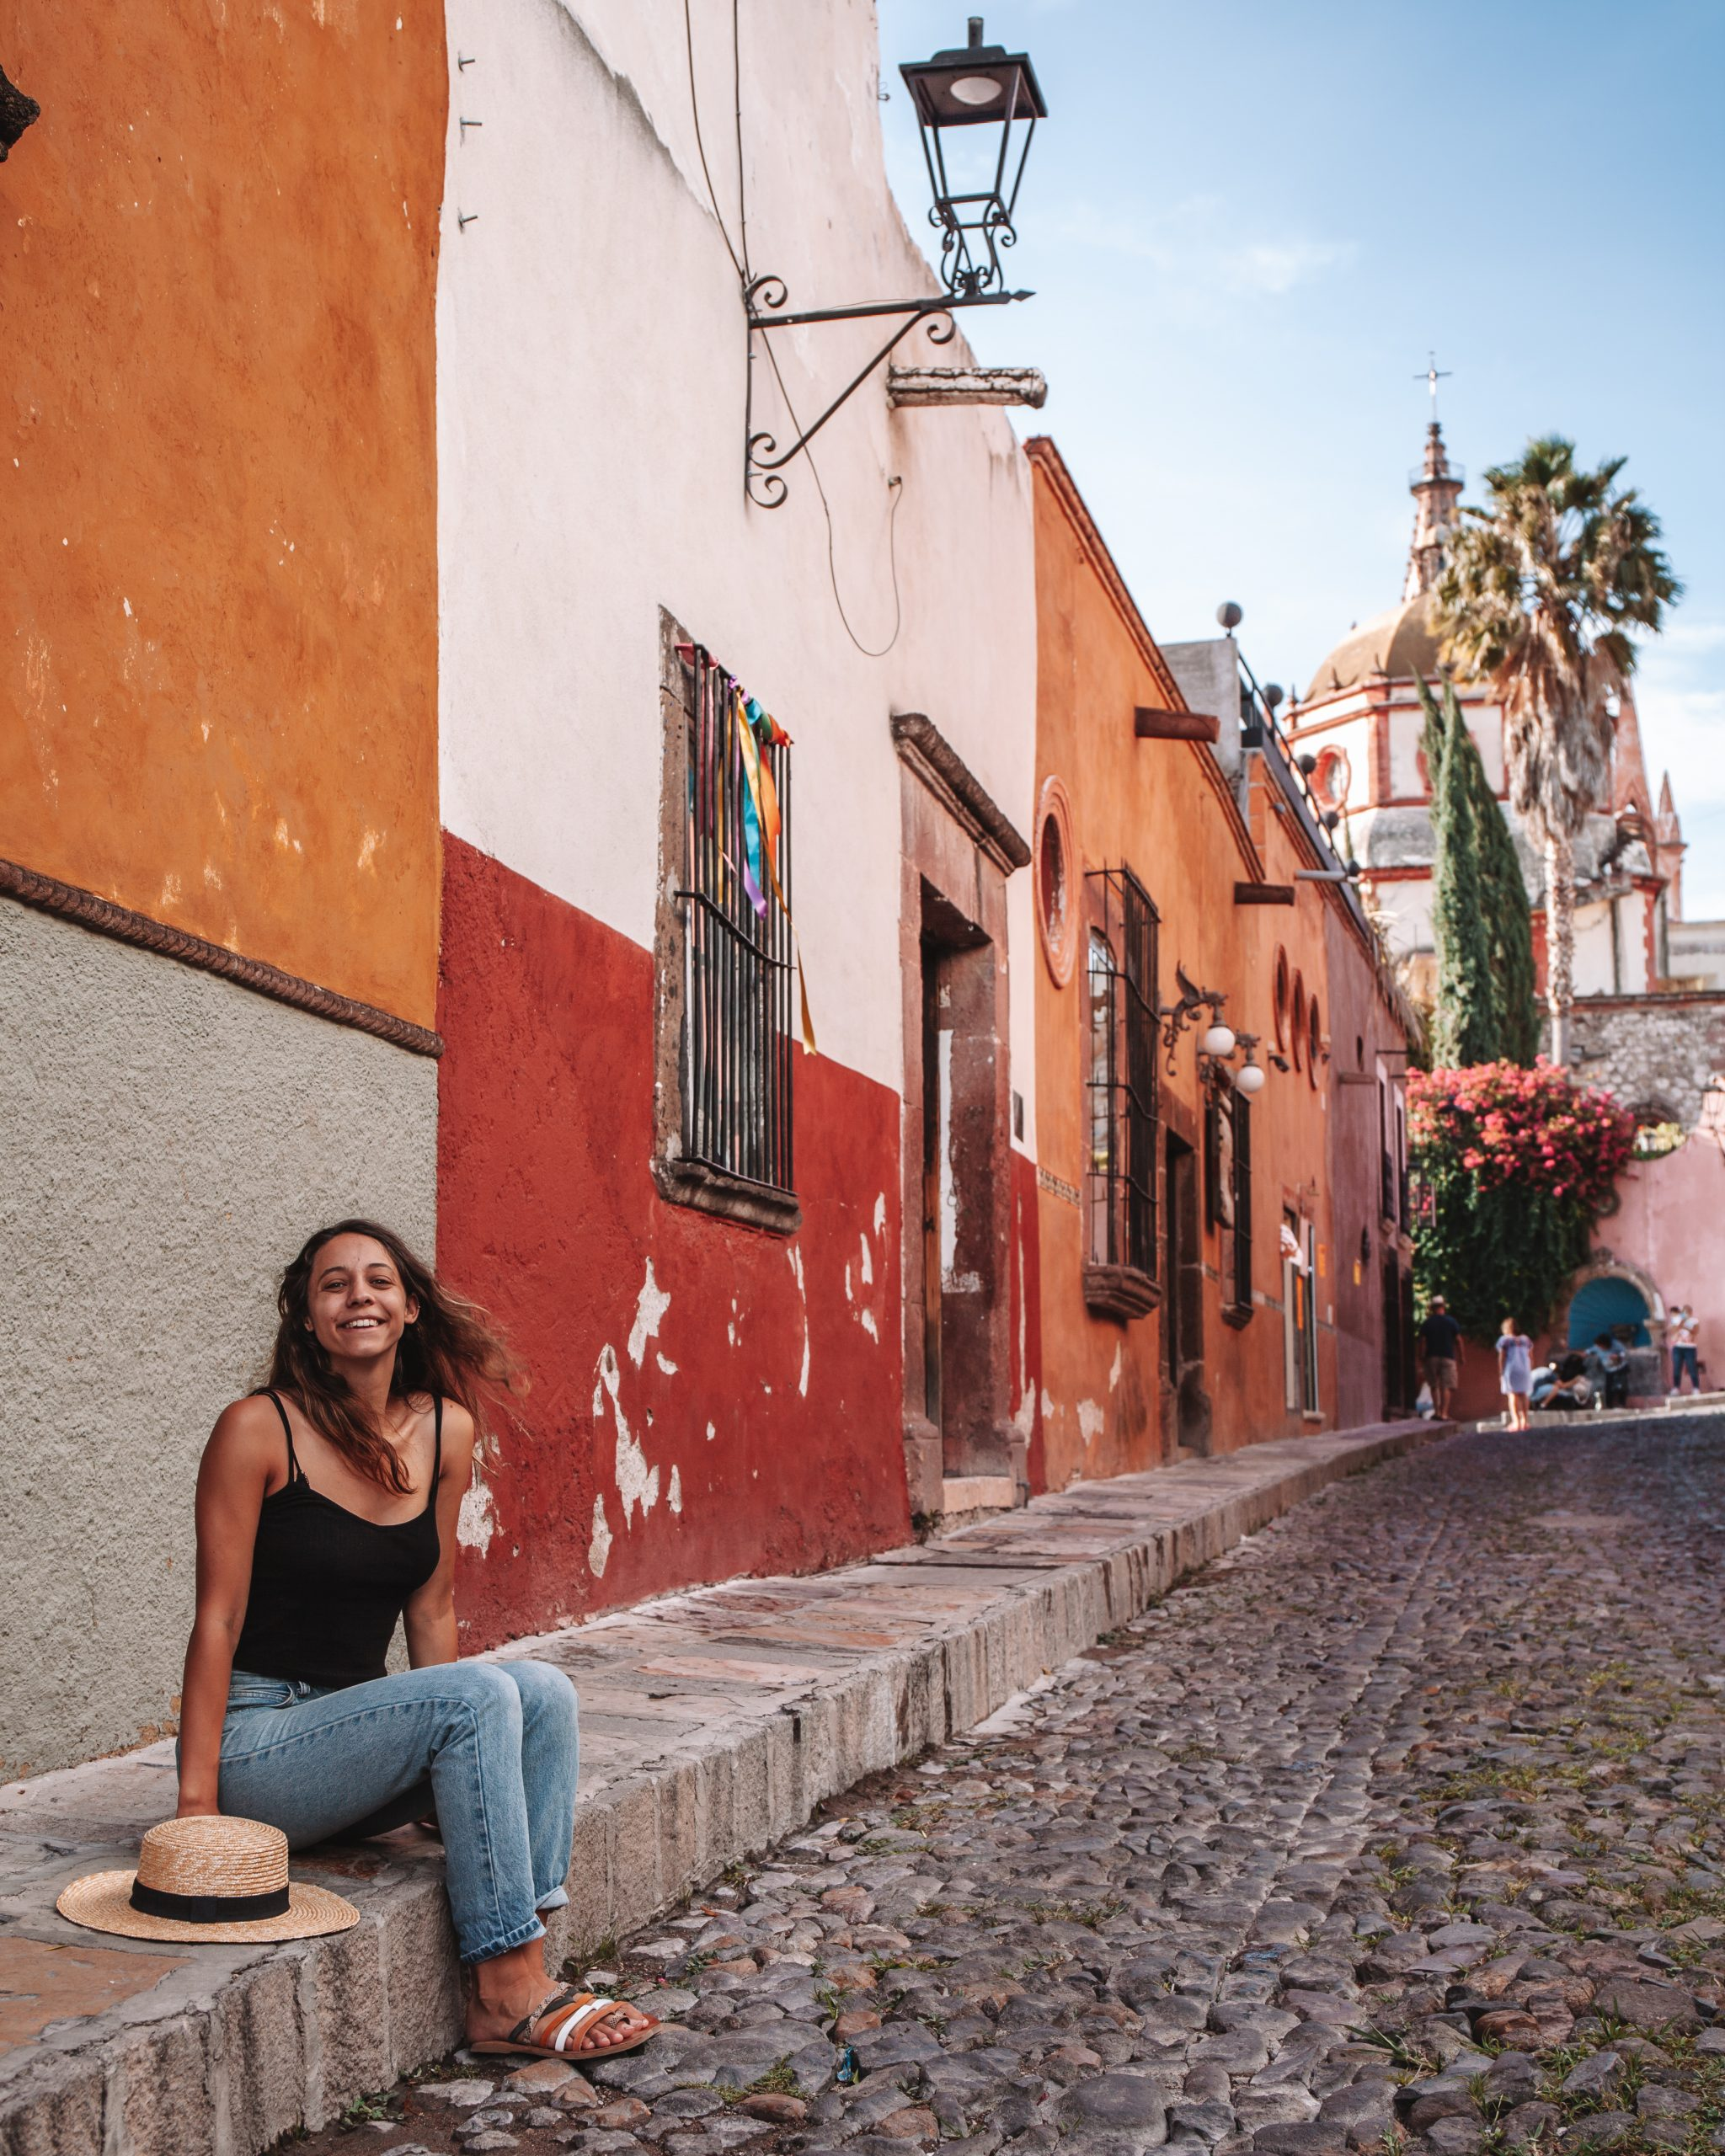 Girl sitting on the colorful street in mexico